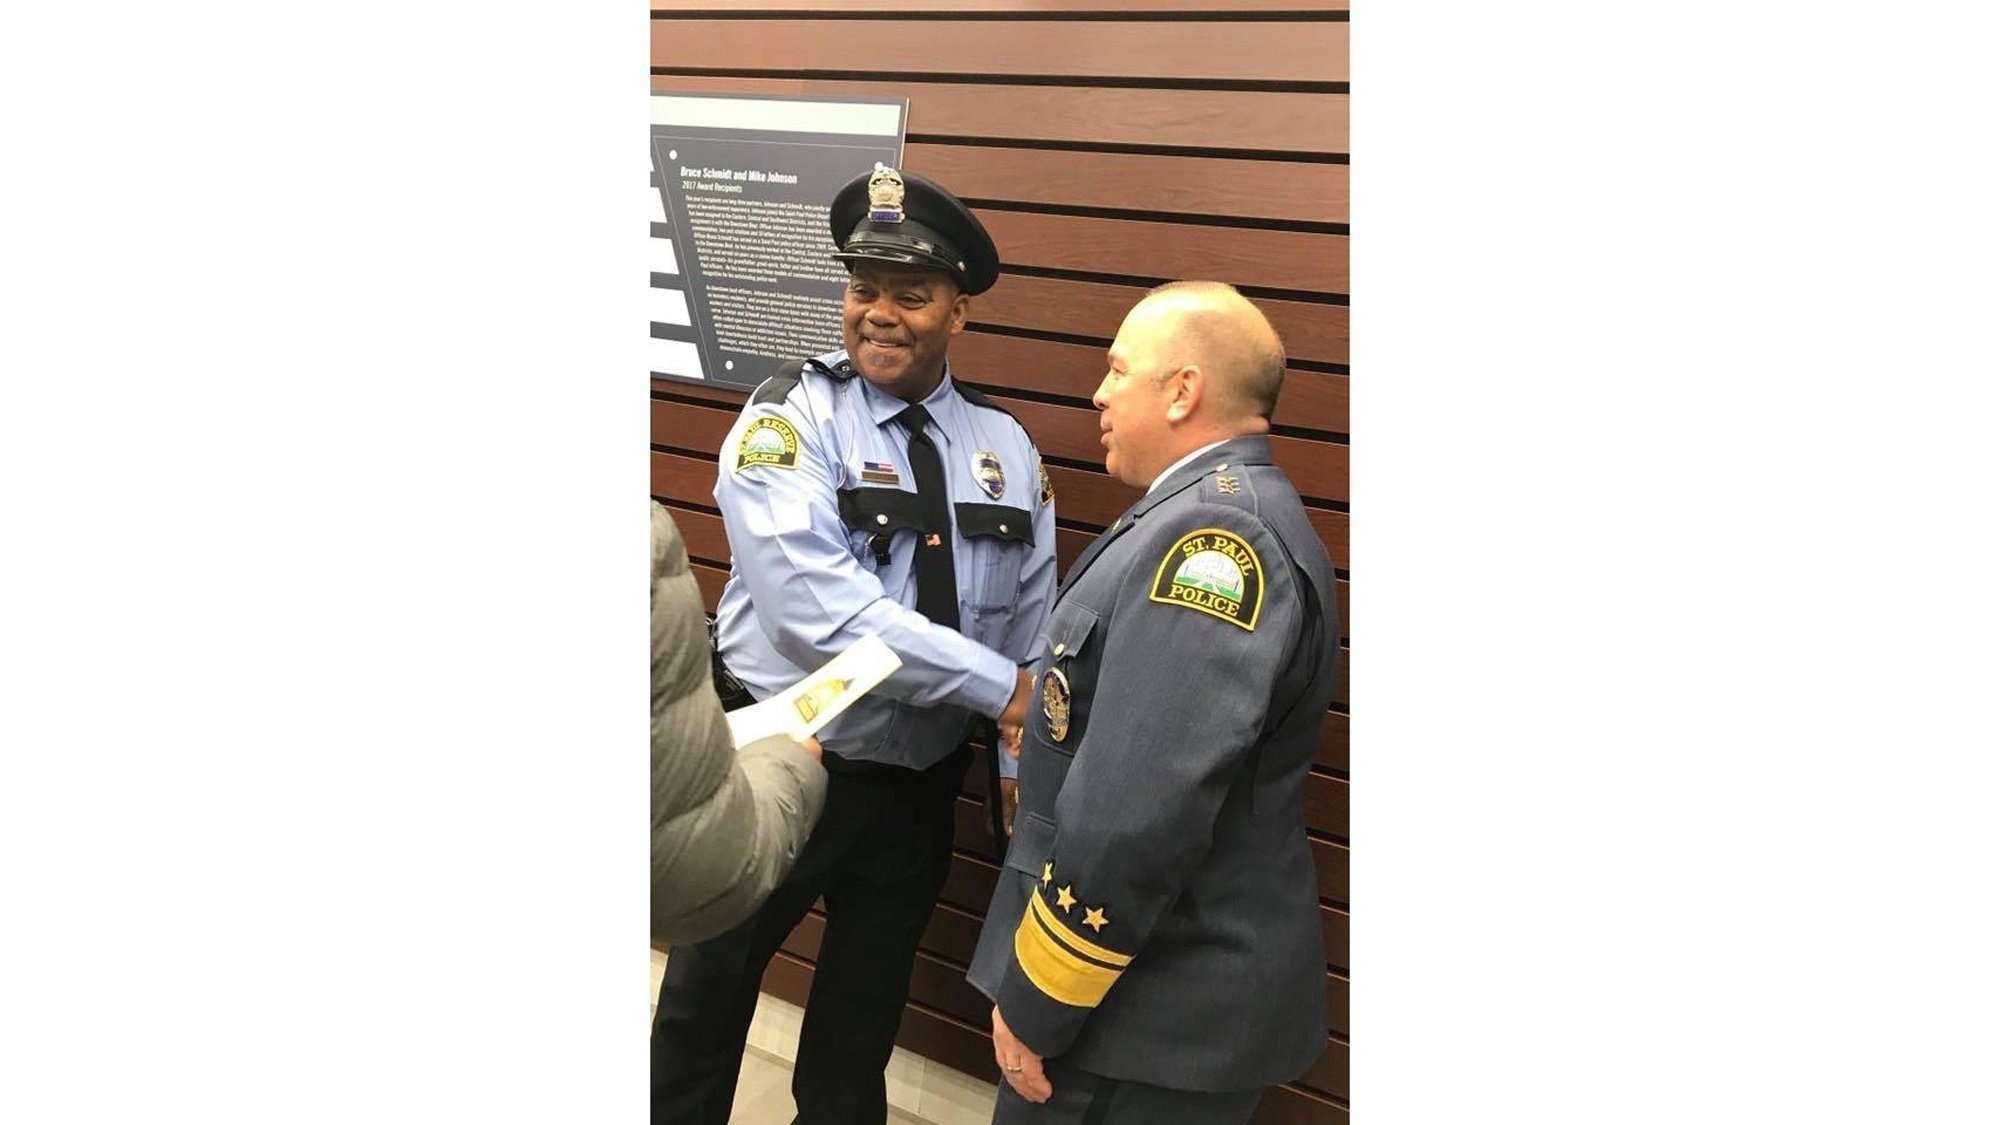 Clarence Castile, the uncle of Philando Castile, is now an officer with the St. Paul Police Reserve Unit.